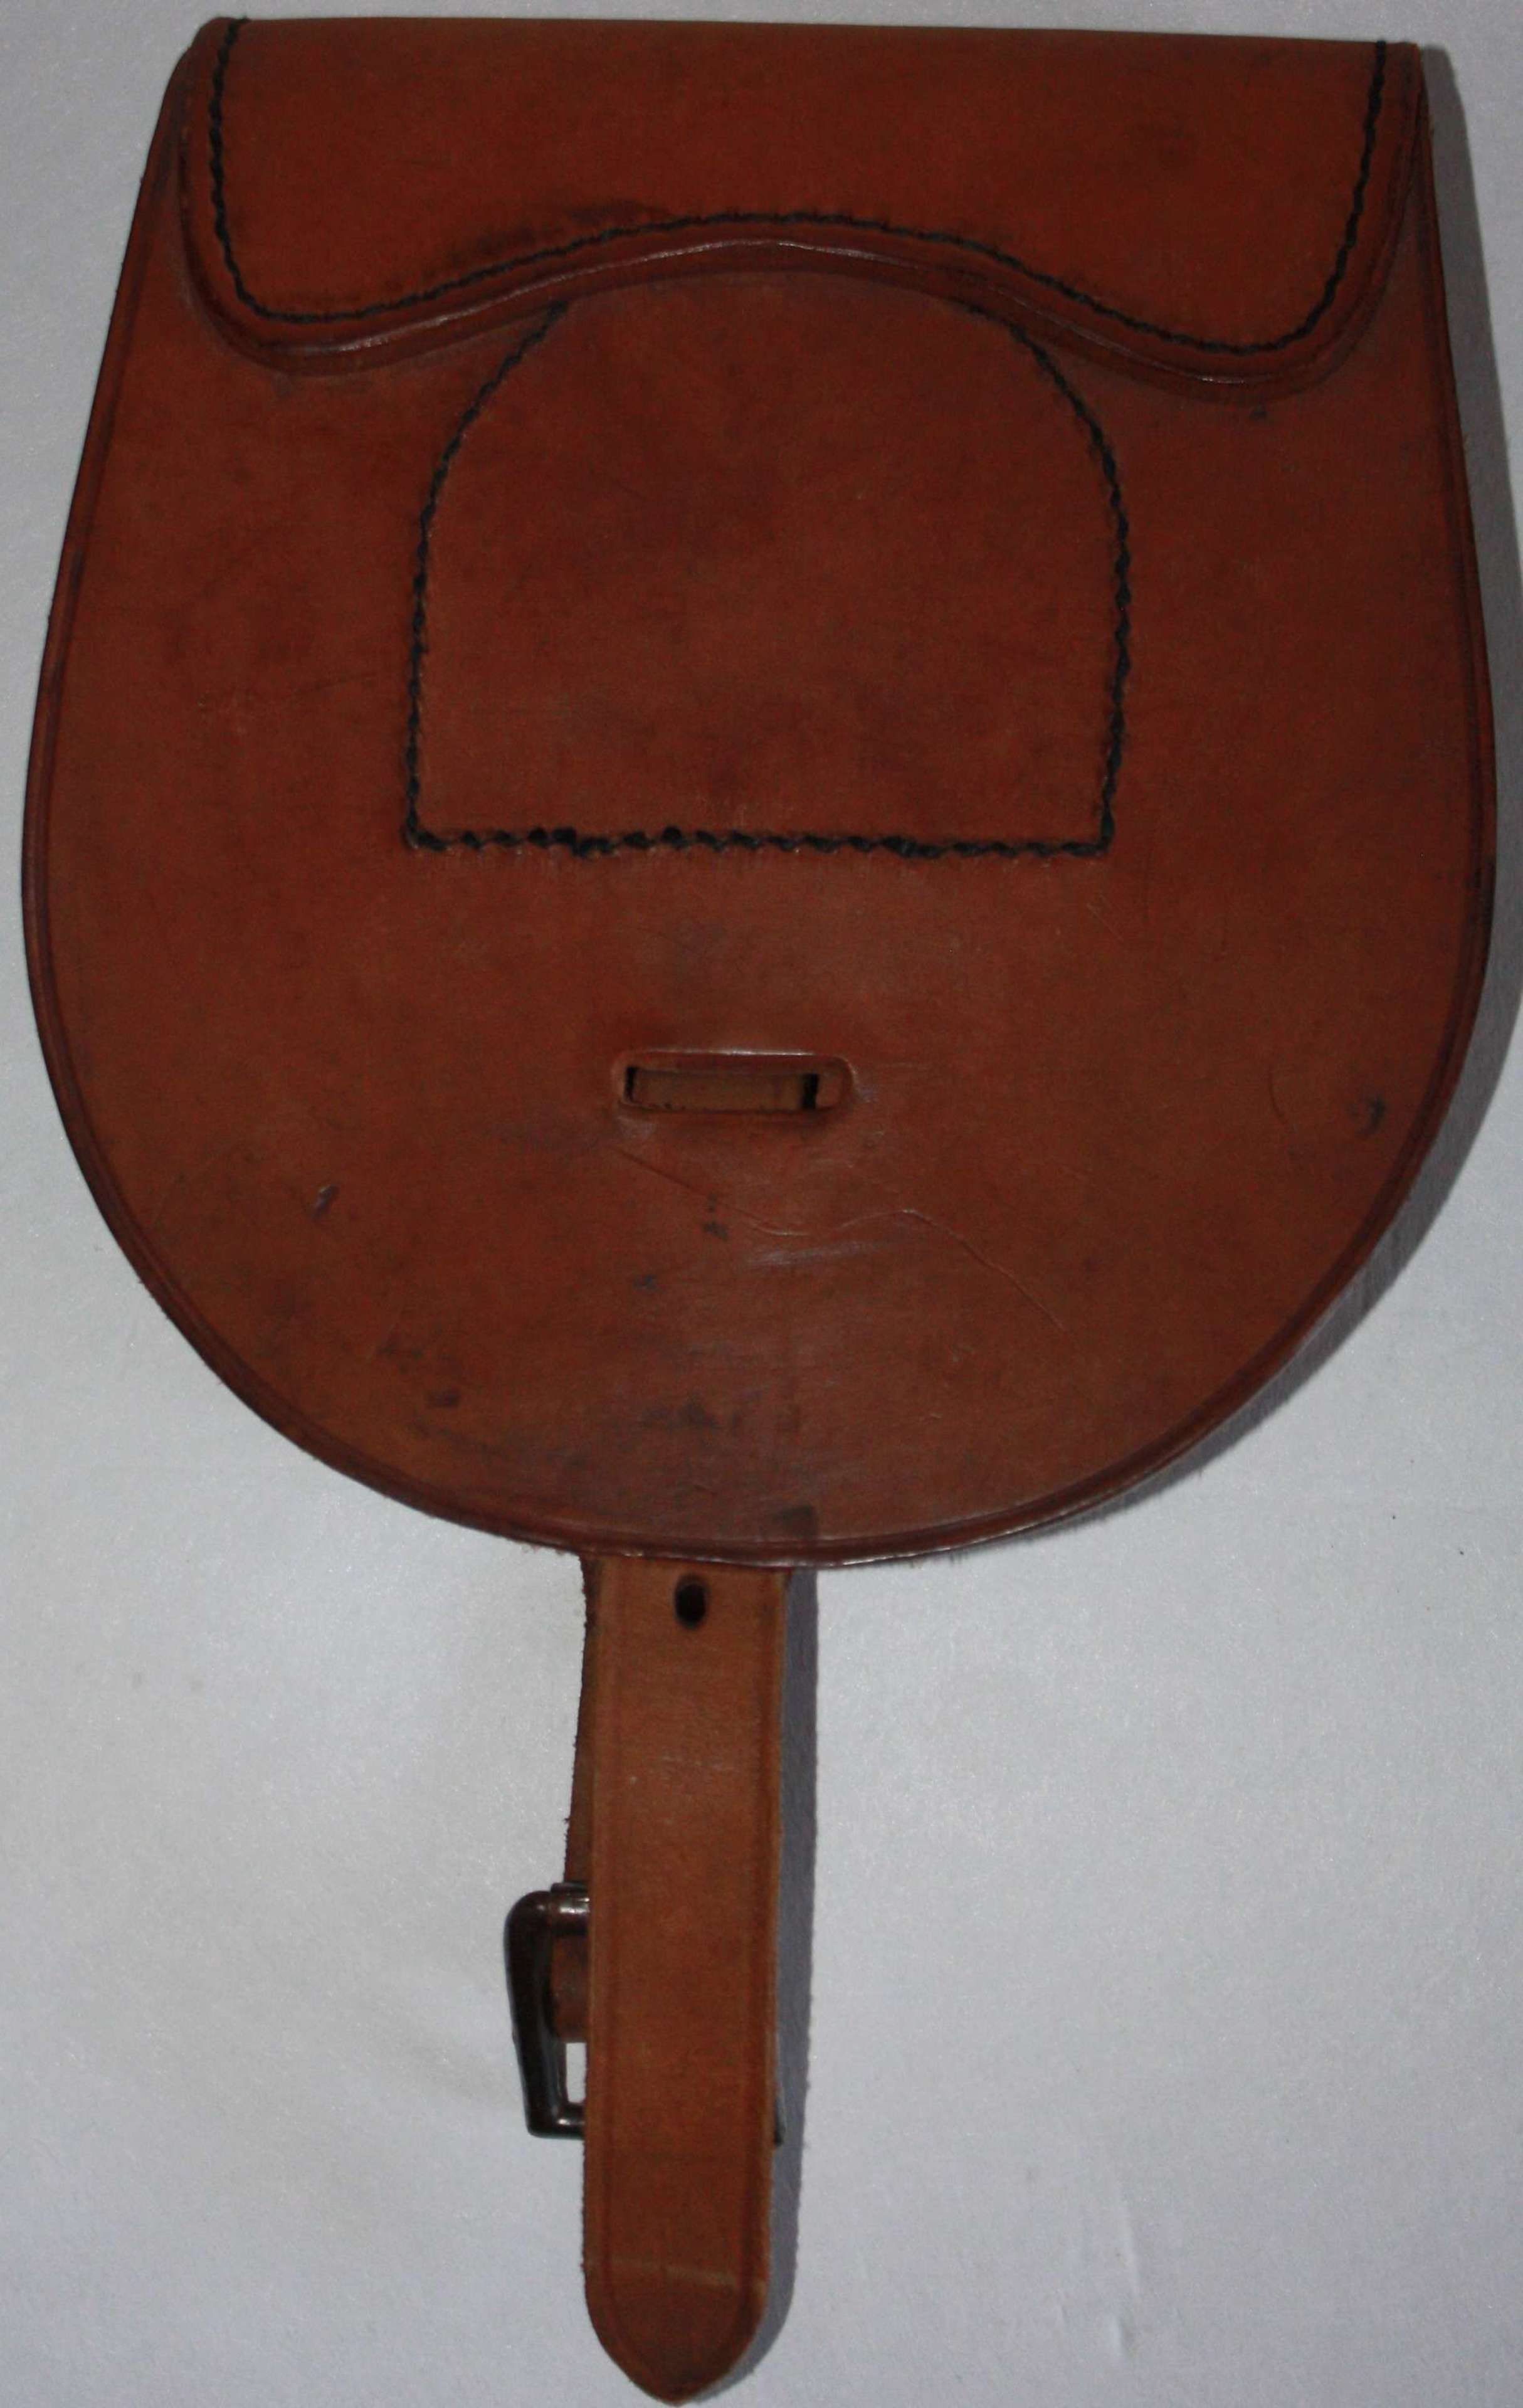 A VERY GOOD EXAMPLE OF THE BRITSH WWII HOSES / MULE SHOE POUCH